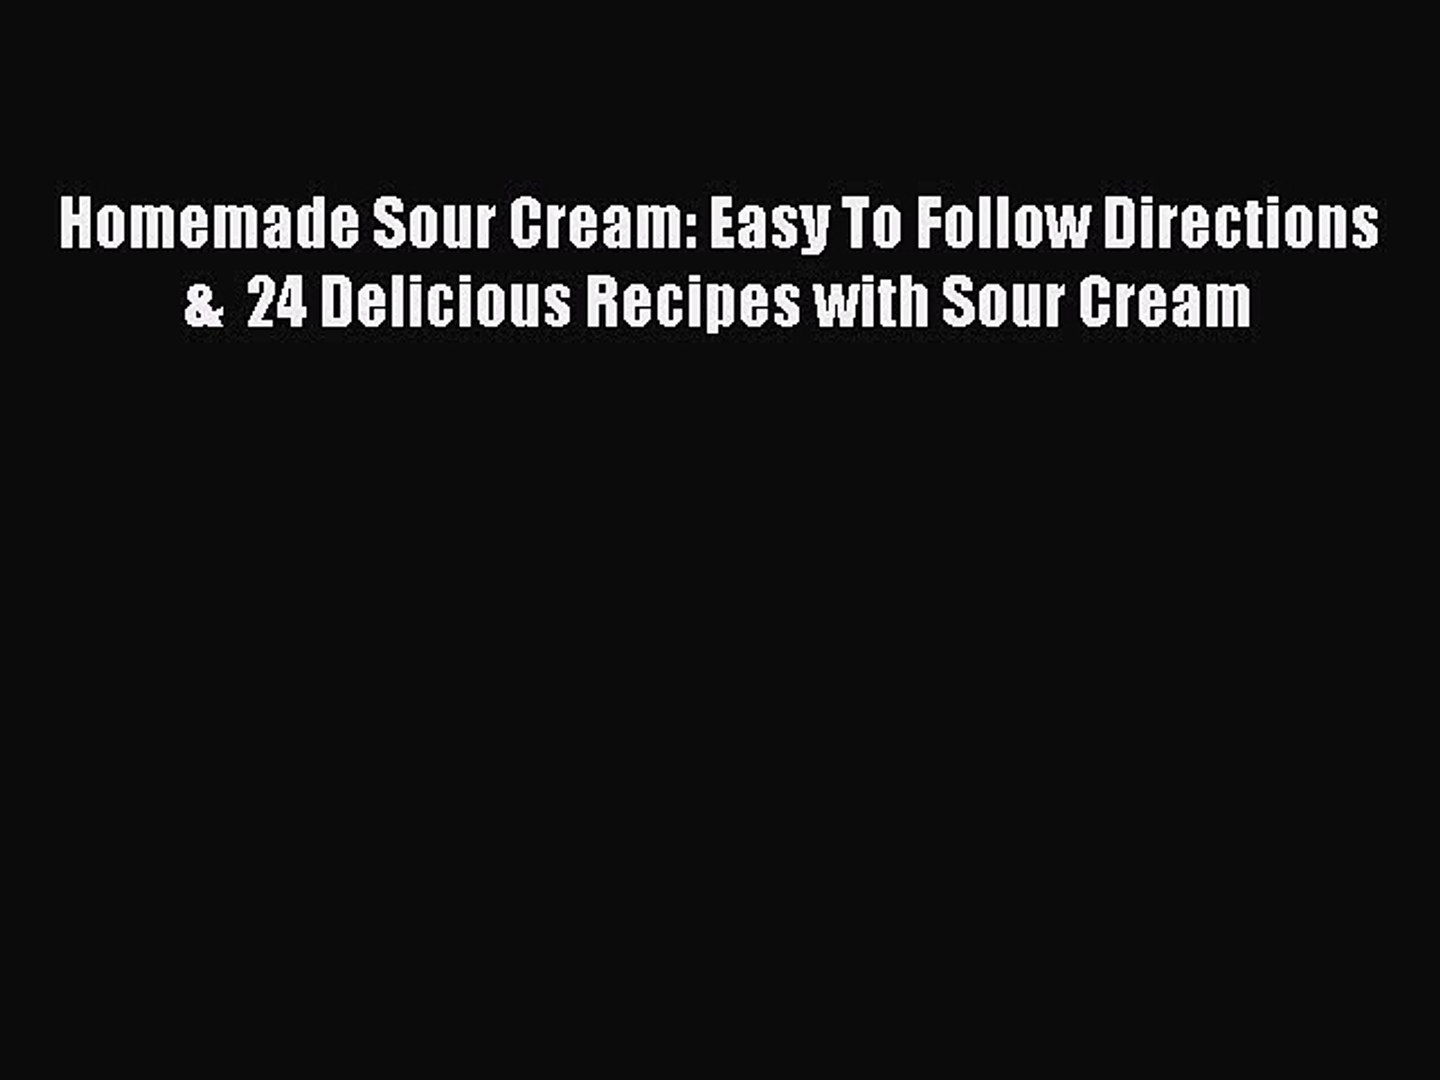 What can you substitute for sour cream?